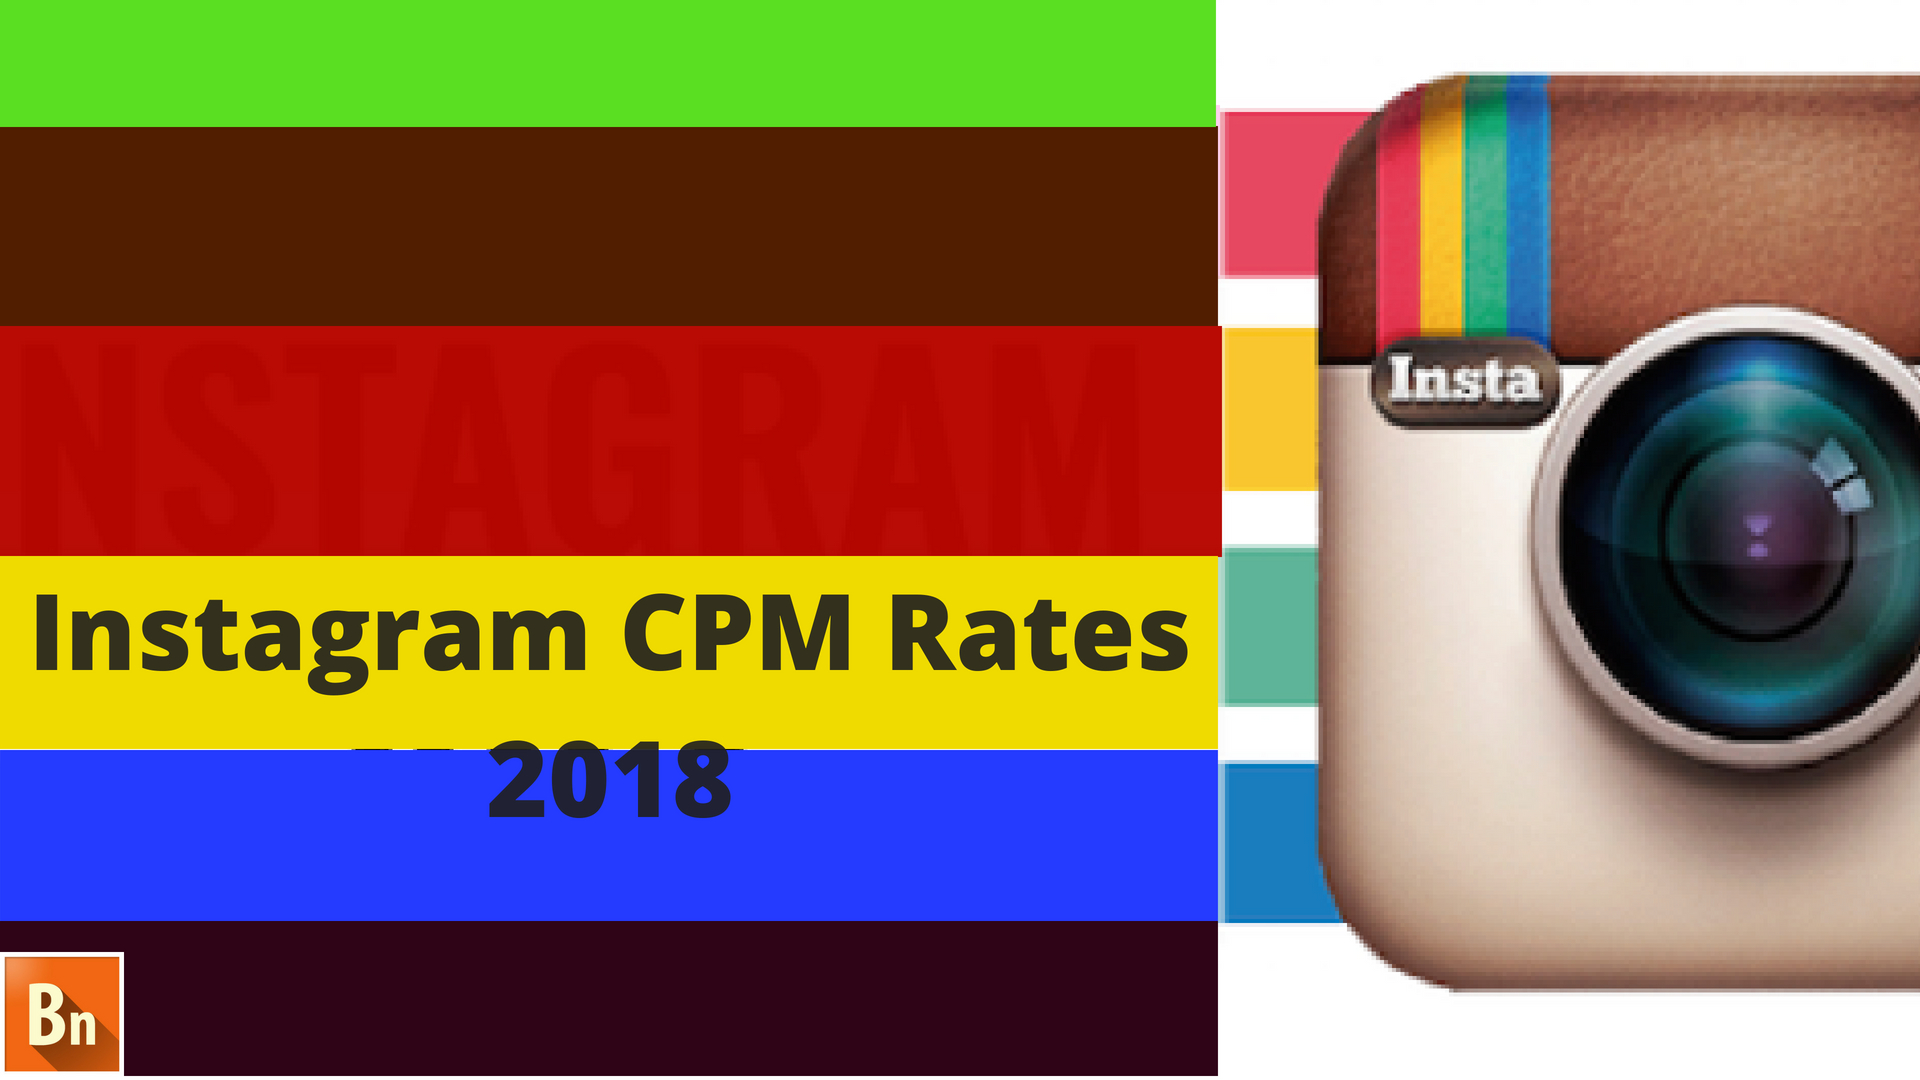 Instagram CPM Rates 2018